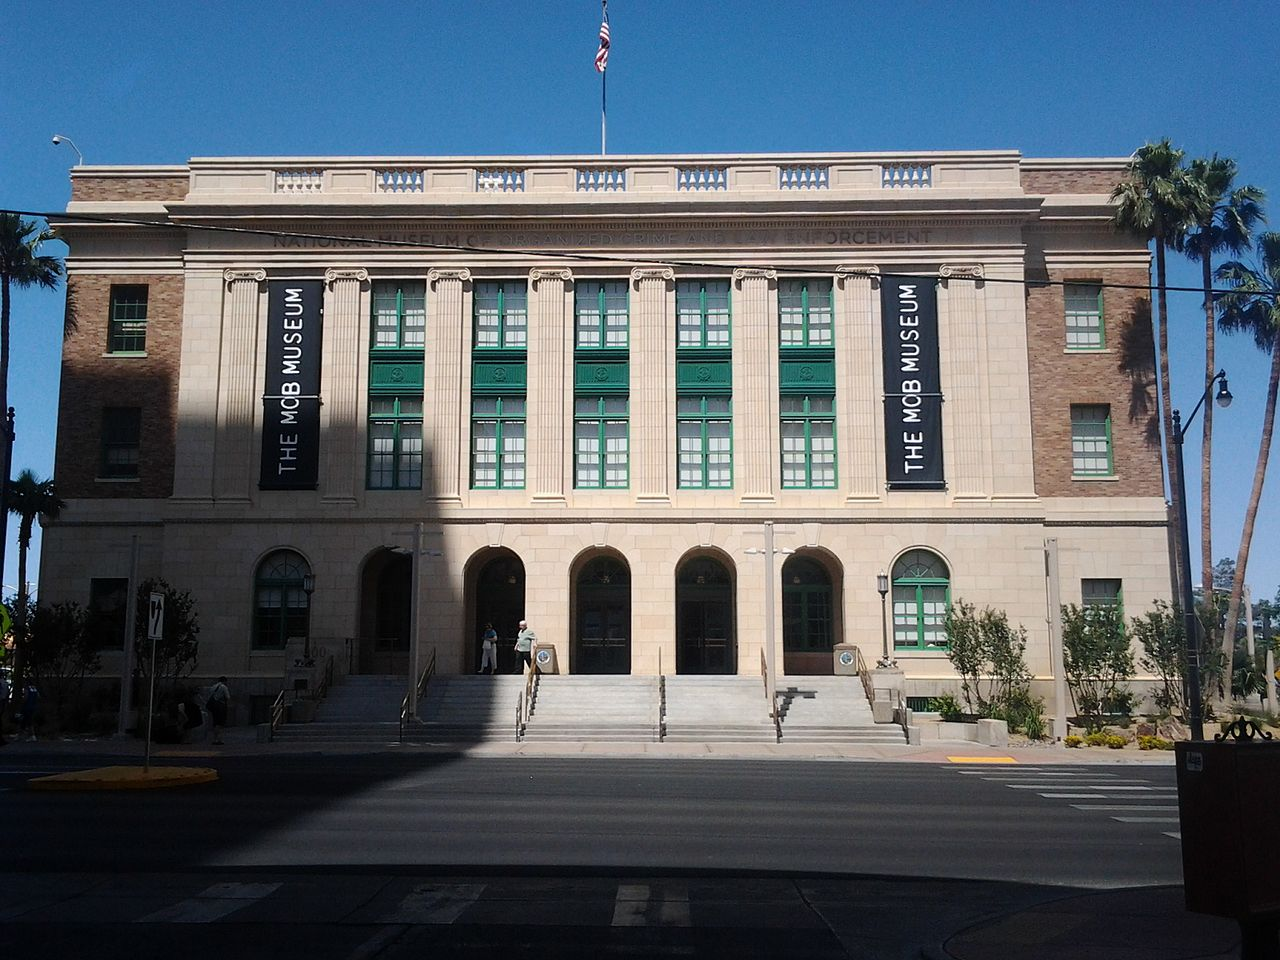 Attraction Tourist Place In Nevada-The Mob Museum